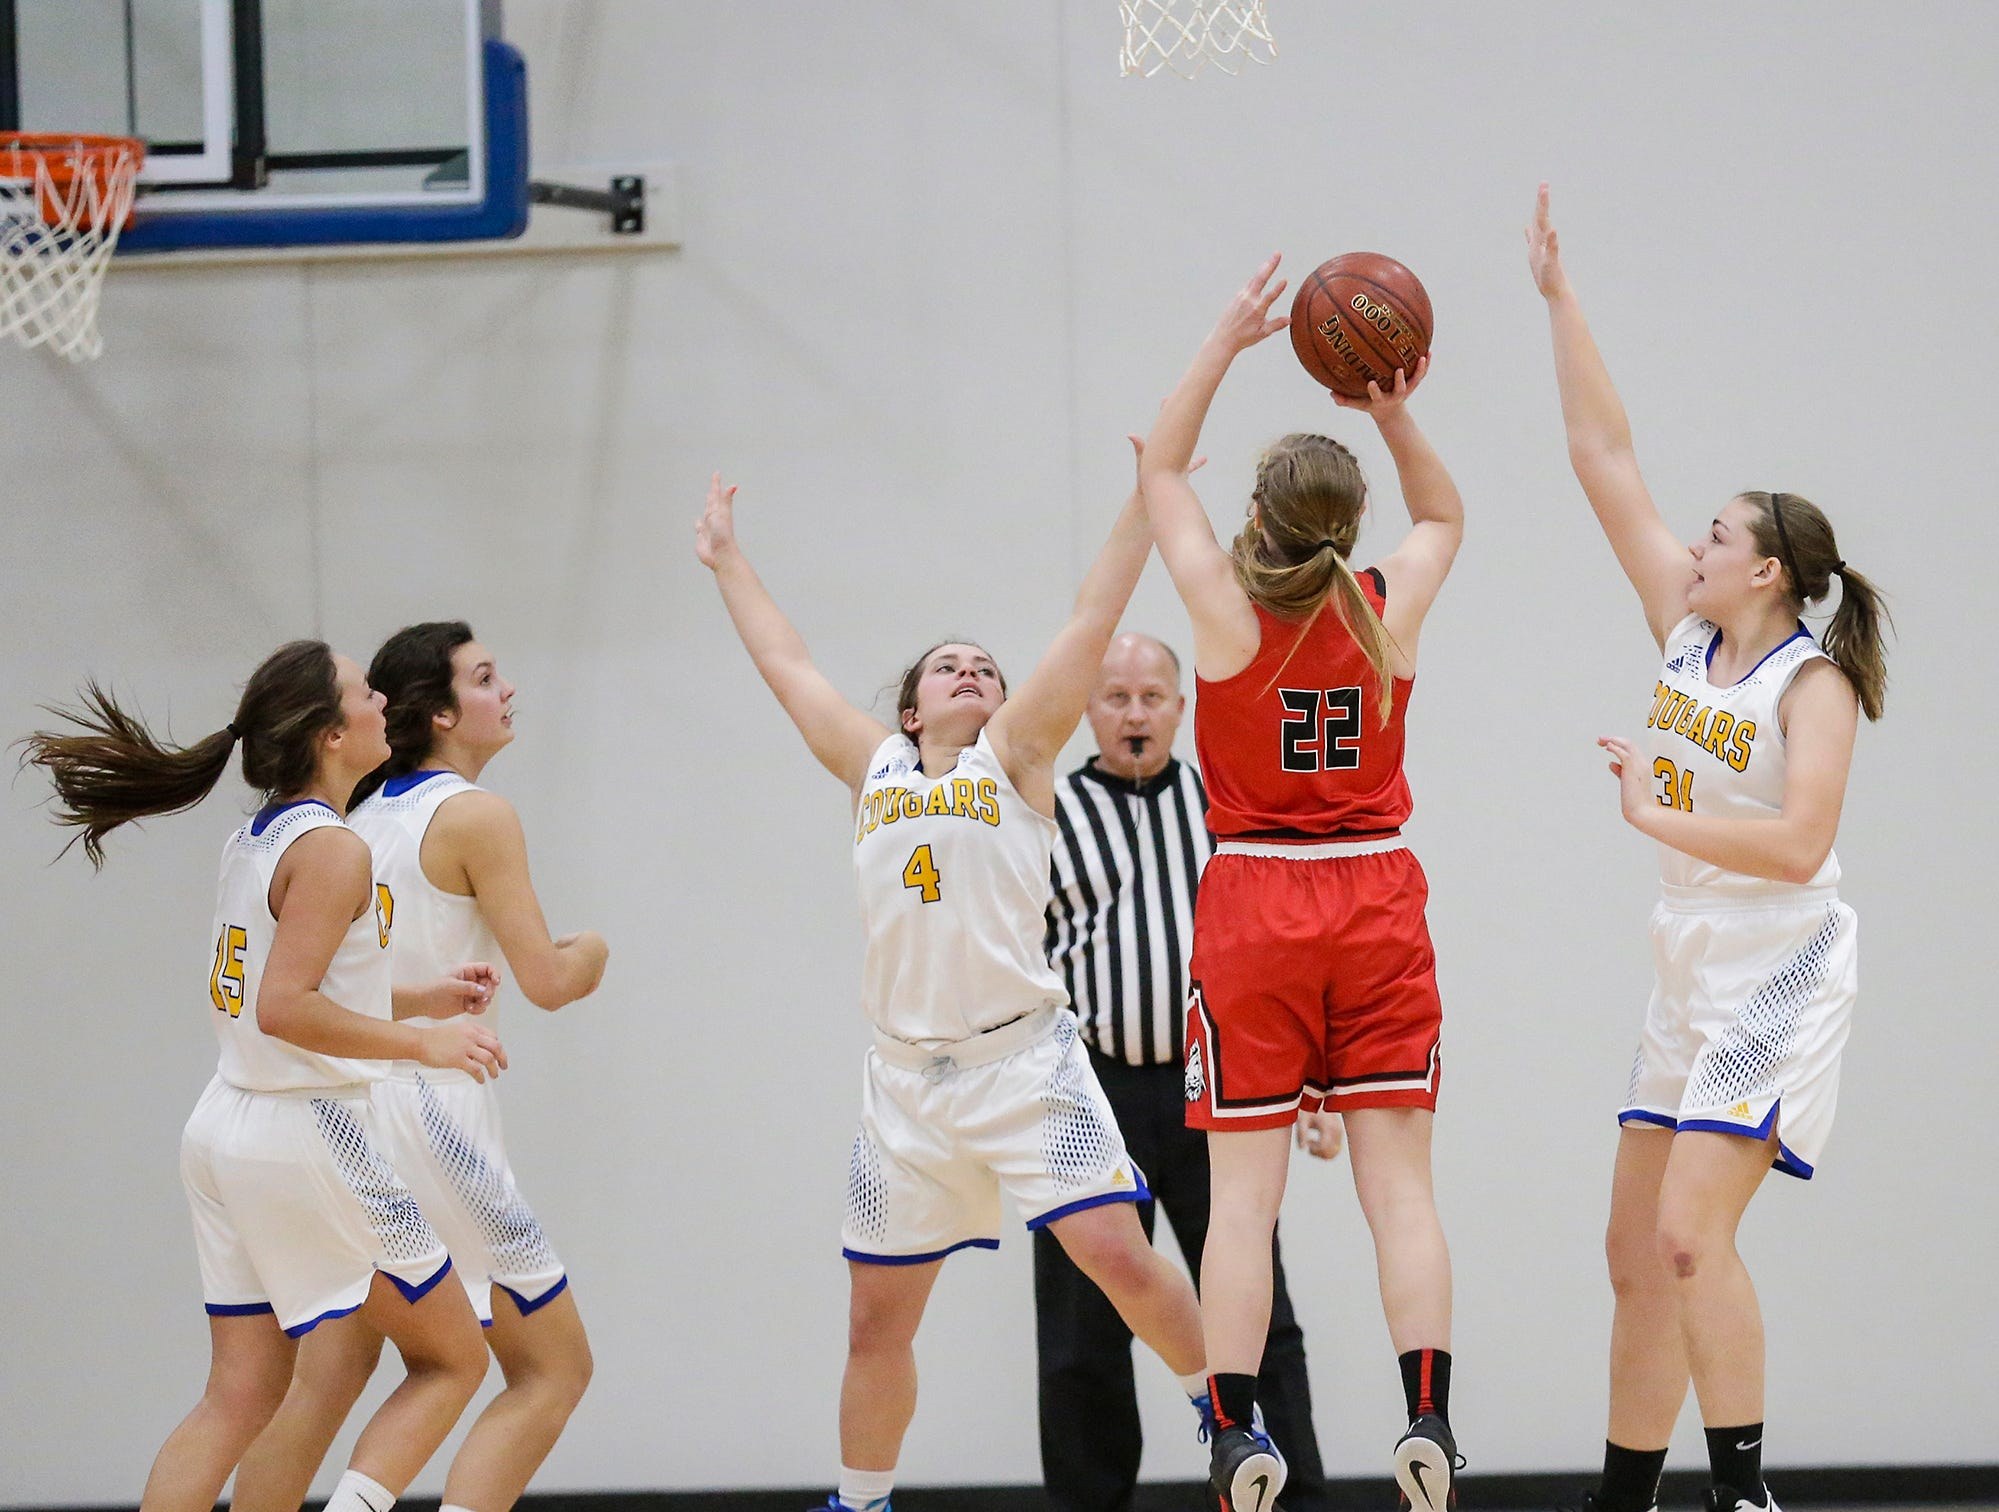 Lomira High School girls basketball's Moira Puls goes up for a basket between Campbellsport High School's Evonna Engel (4) and Kaianne Hodorff (34) during their game Friday, December 28, 2018 in Campbellsport. Doug Raflik/USA TODAY NETWORK-Wisconsin